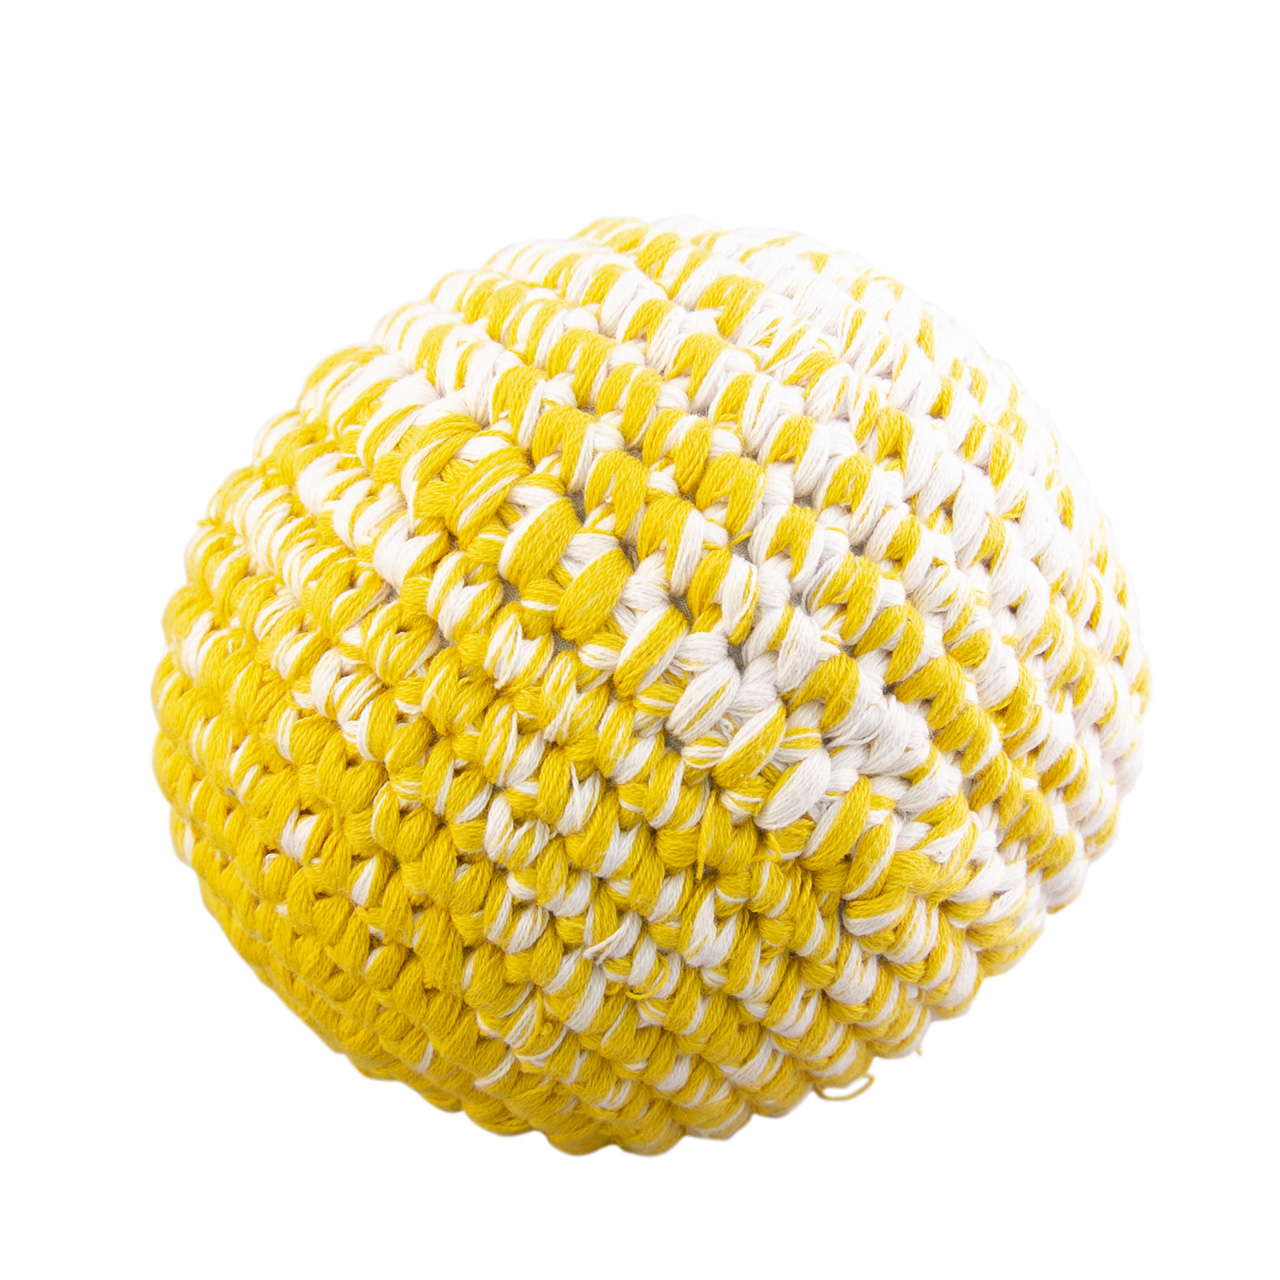 Crochet Ball Pattern Crochet Ball Faded Ochre Global Affairs